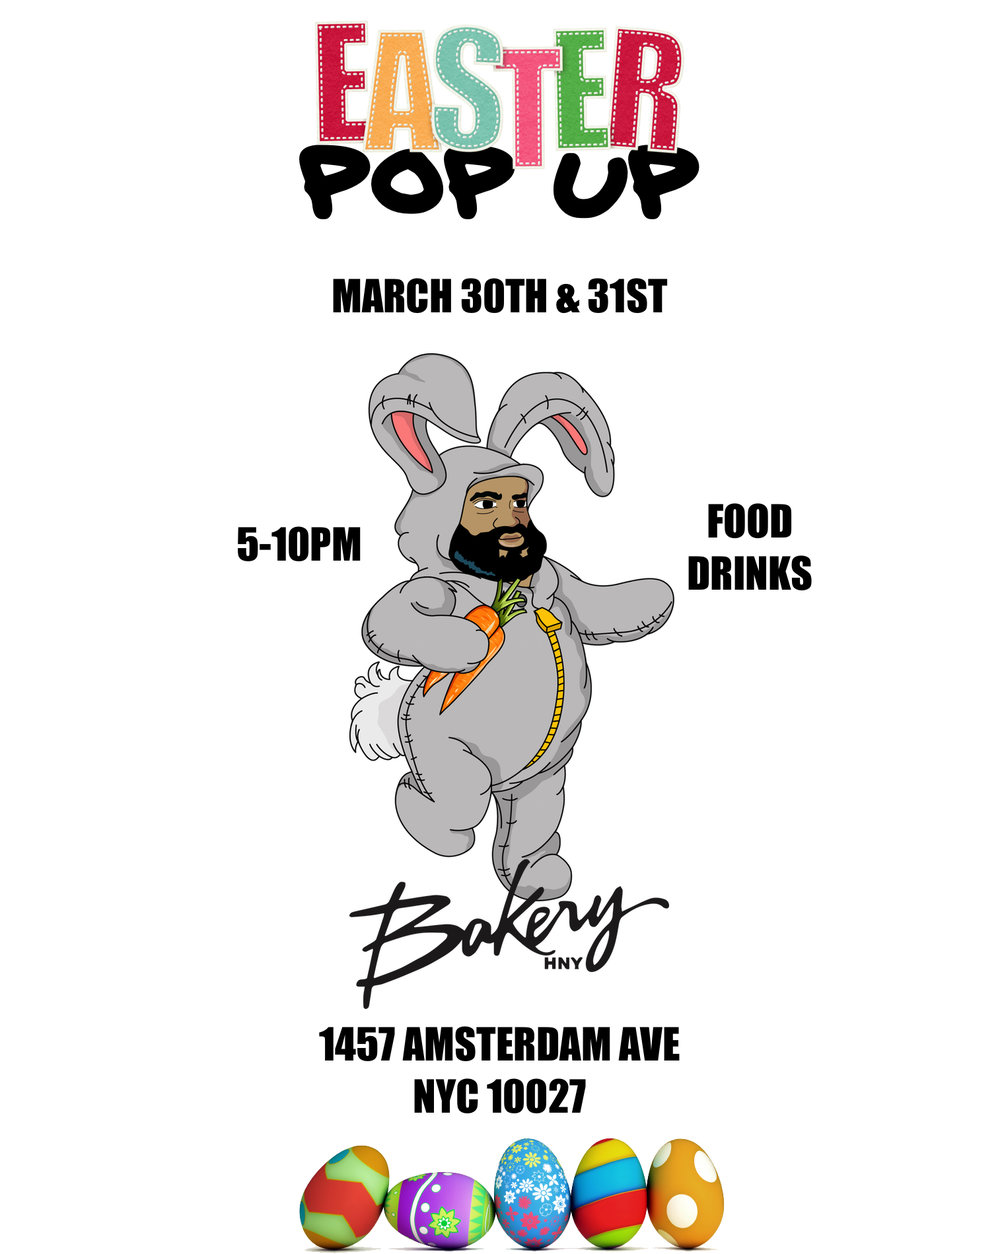 """please join Us! We also have FREE GIVE AWAYSS    Text """" easterfresh """" to 51660 for a chance to win free items from the event    food & drinks provided!"""